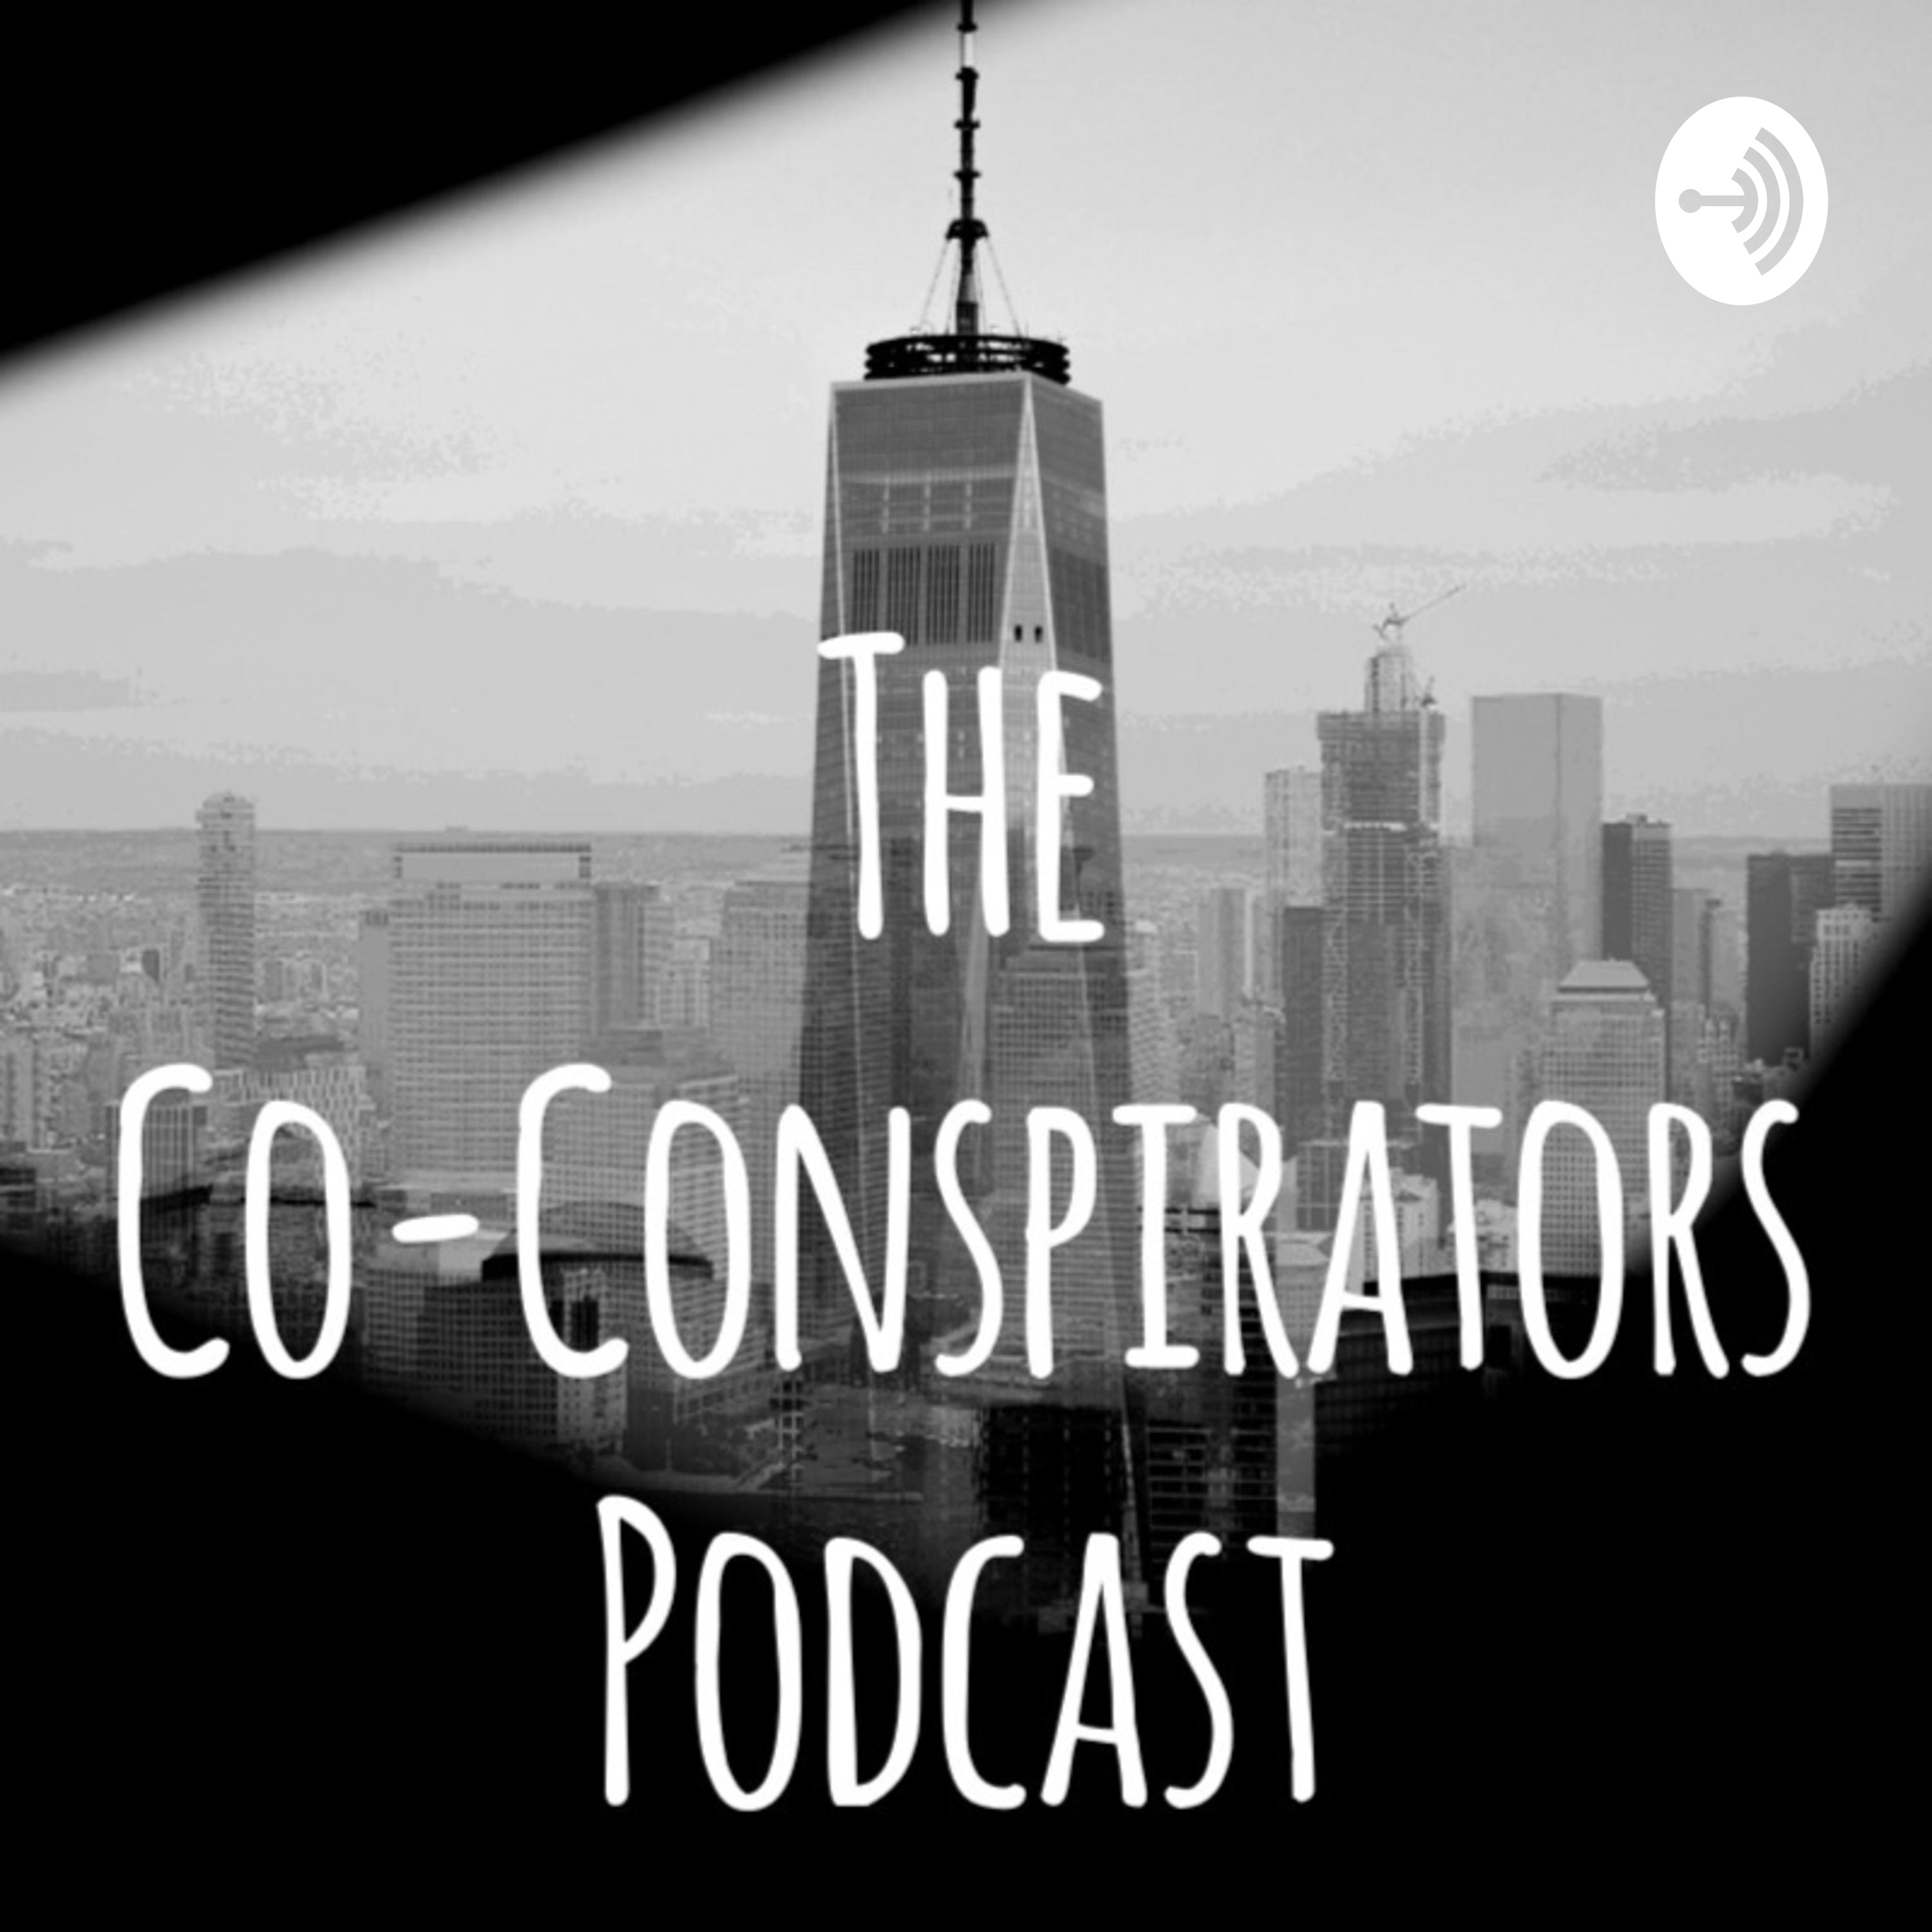 9/11 Conspiracy Theories Revisited: Challenging the Official Narrative? (Co-Conspirators Podcast #17)